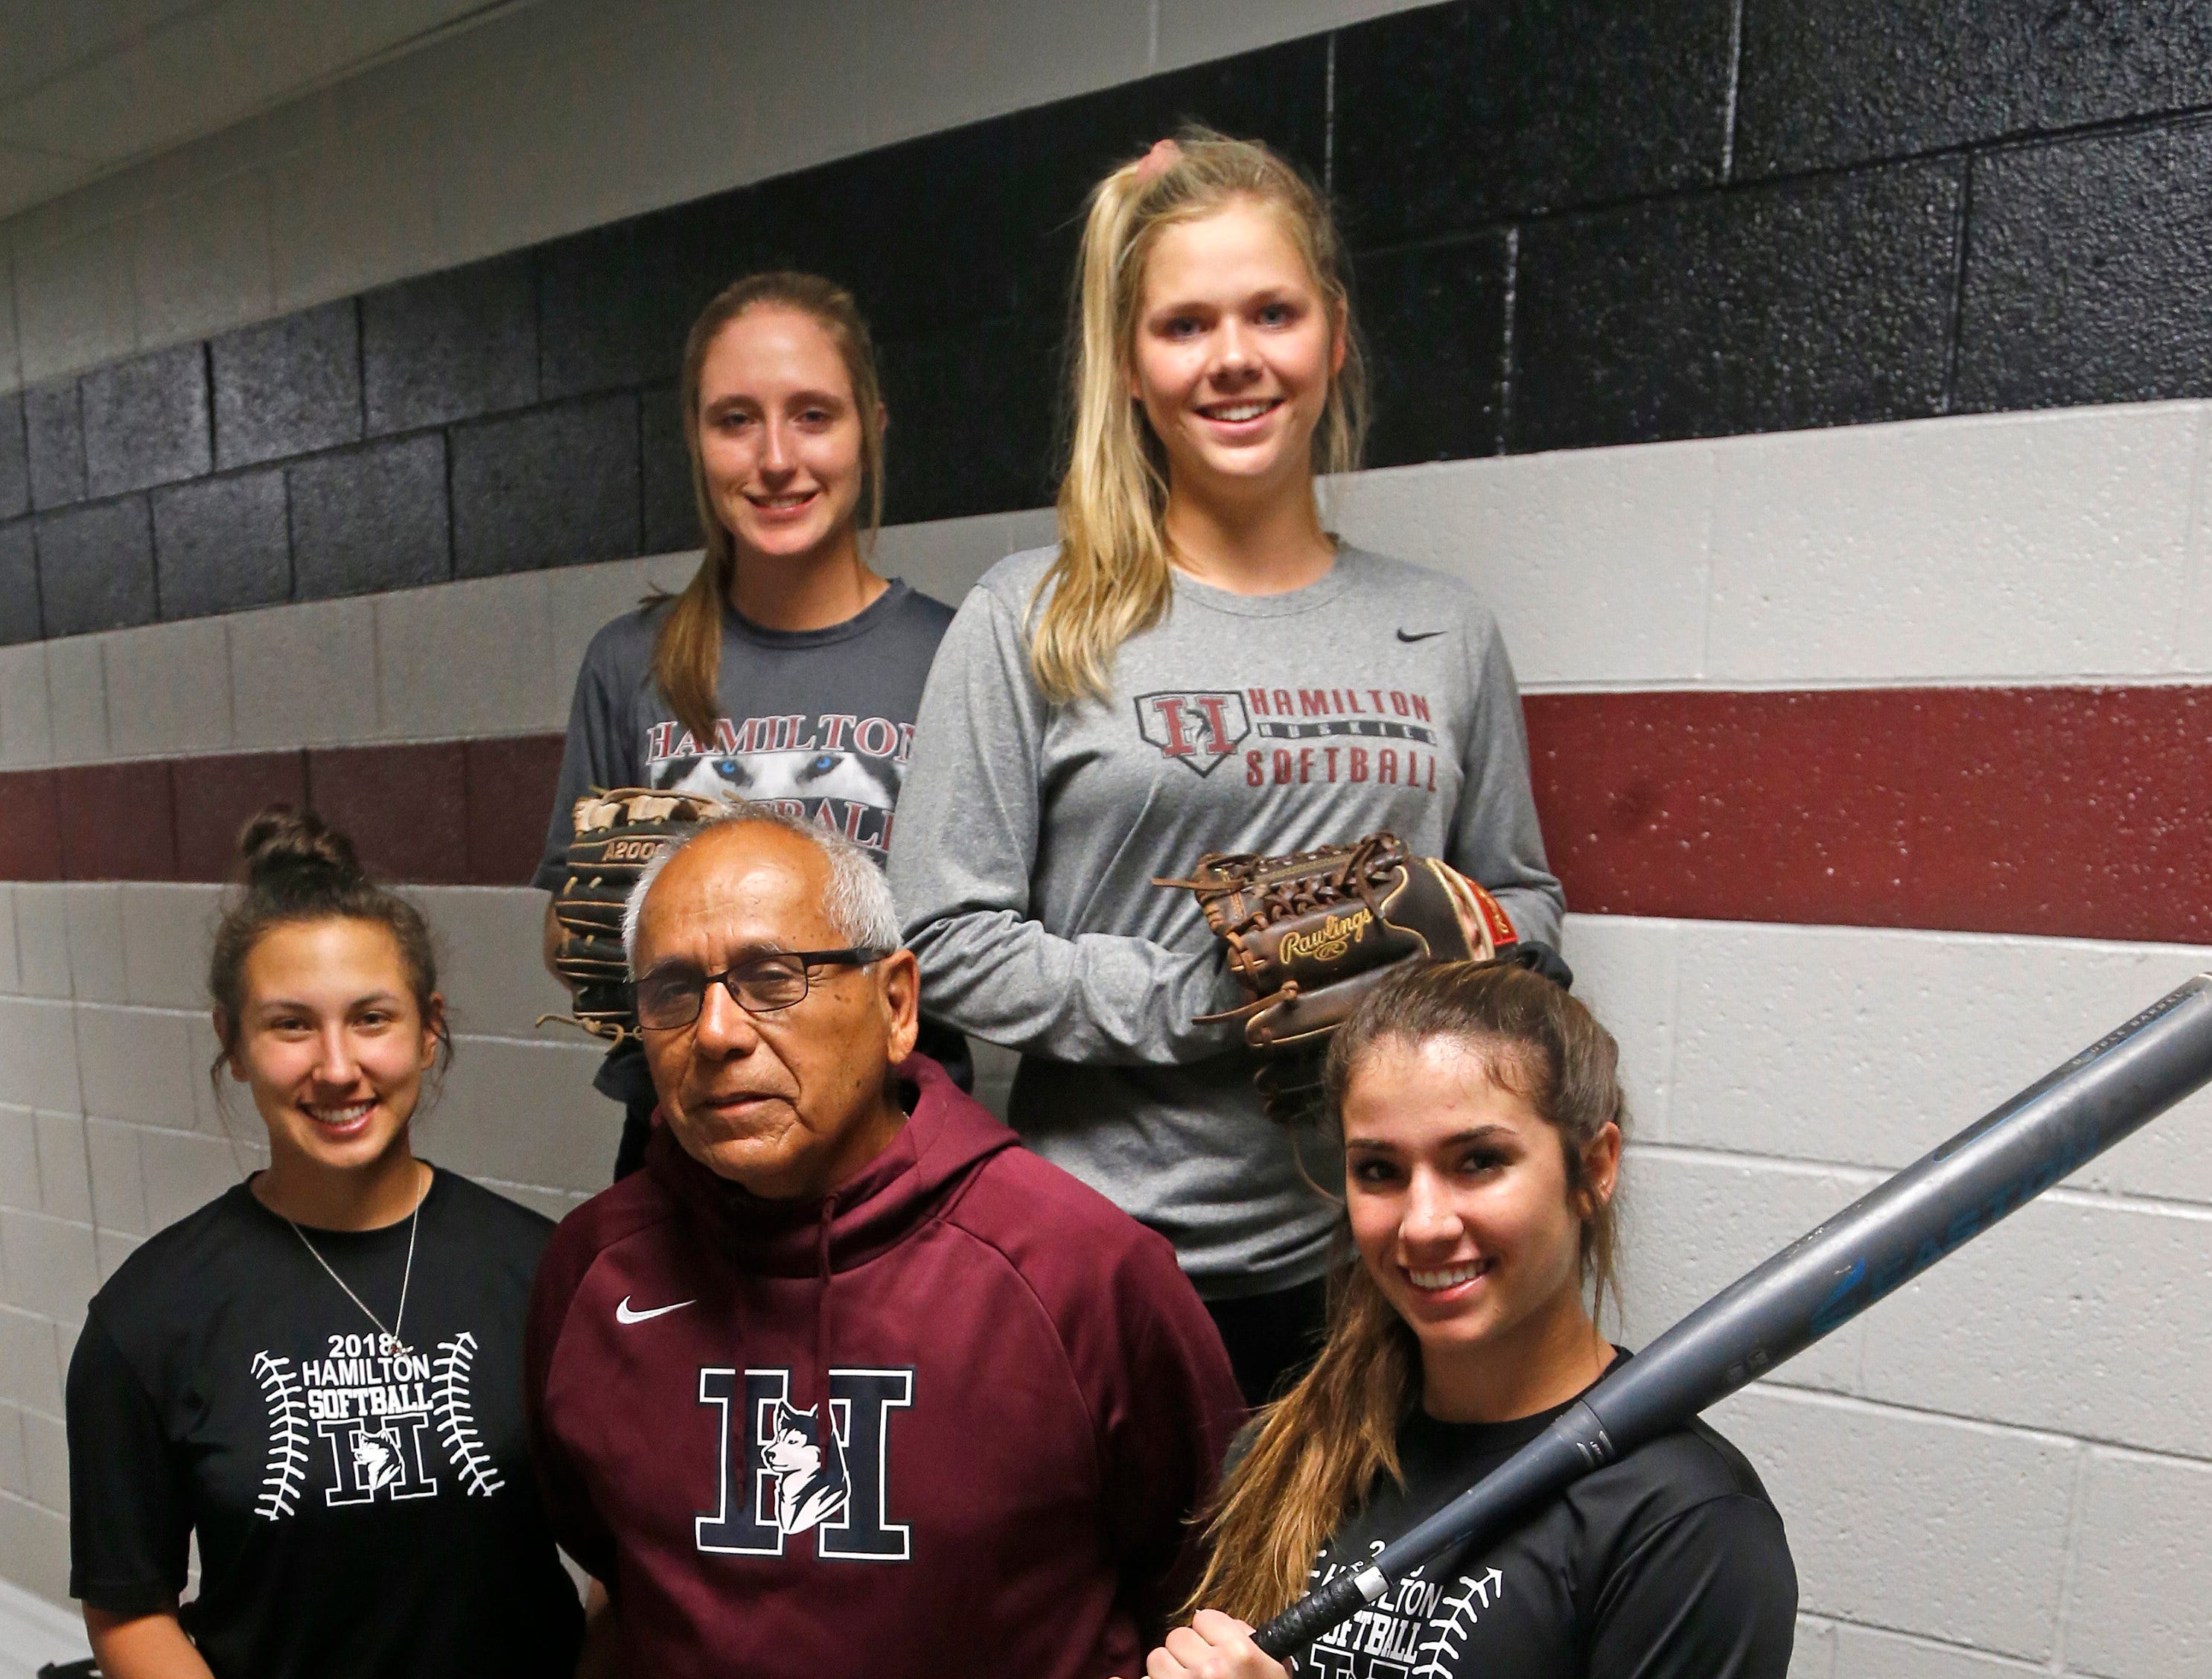 Hamilton's head coach Rocky Parra surrounded by his players Lorena Vasquez-Inzunza (L-R), Dani Cole, Macy Simmons and Loganne Stepp pose for a picture at Hamilton High School in Chandler, Ariz. on February 21, 2019.